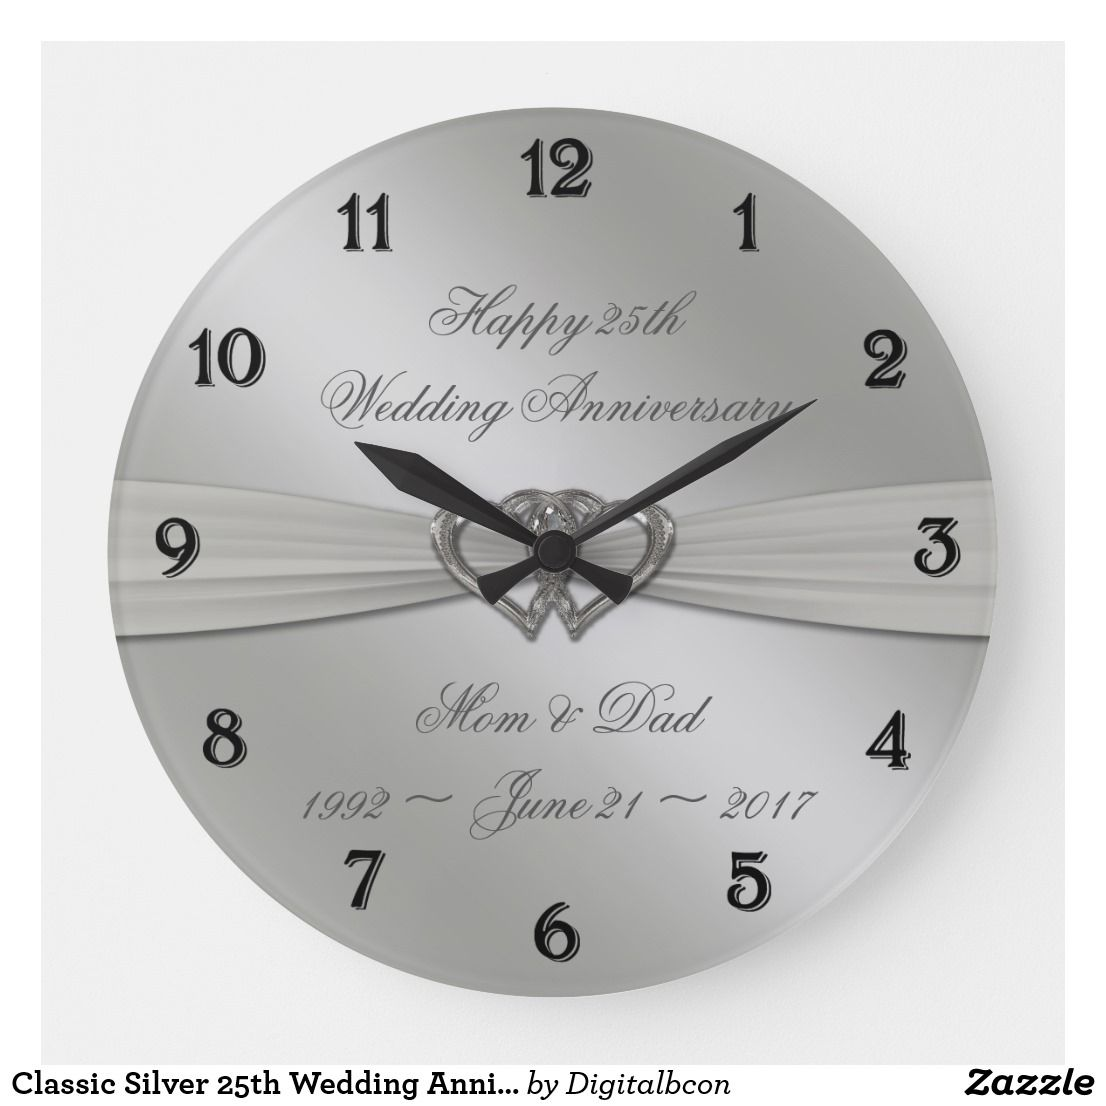 Classic Silver 25th Wedding Anniversary Wall Clock Zazzle Com 25th Wedding Anniversary Silver 25 Wedding Anniversary Gifts 25th Wedding Anniversary